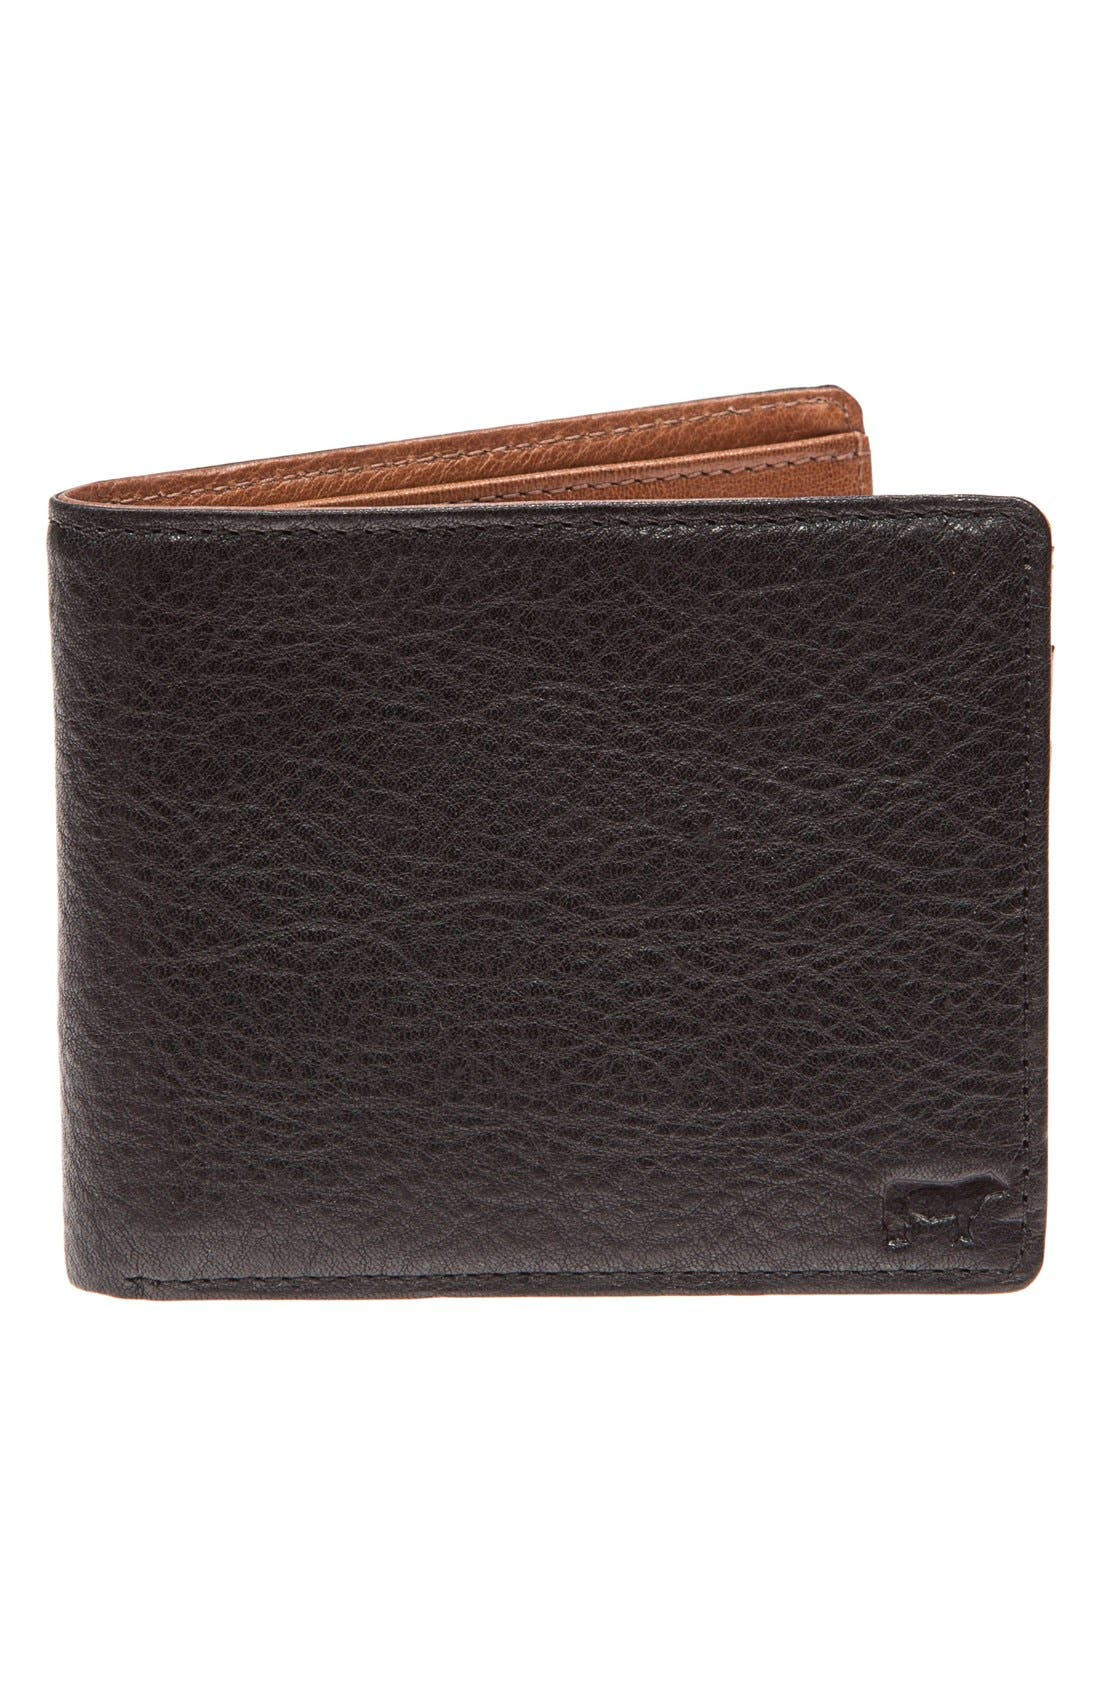 WILL LEATHER GOODS,                             'Barnard' Wallet,                             Main thumbnail 1, color,                             001